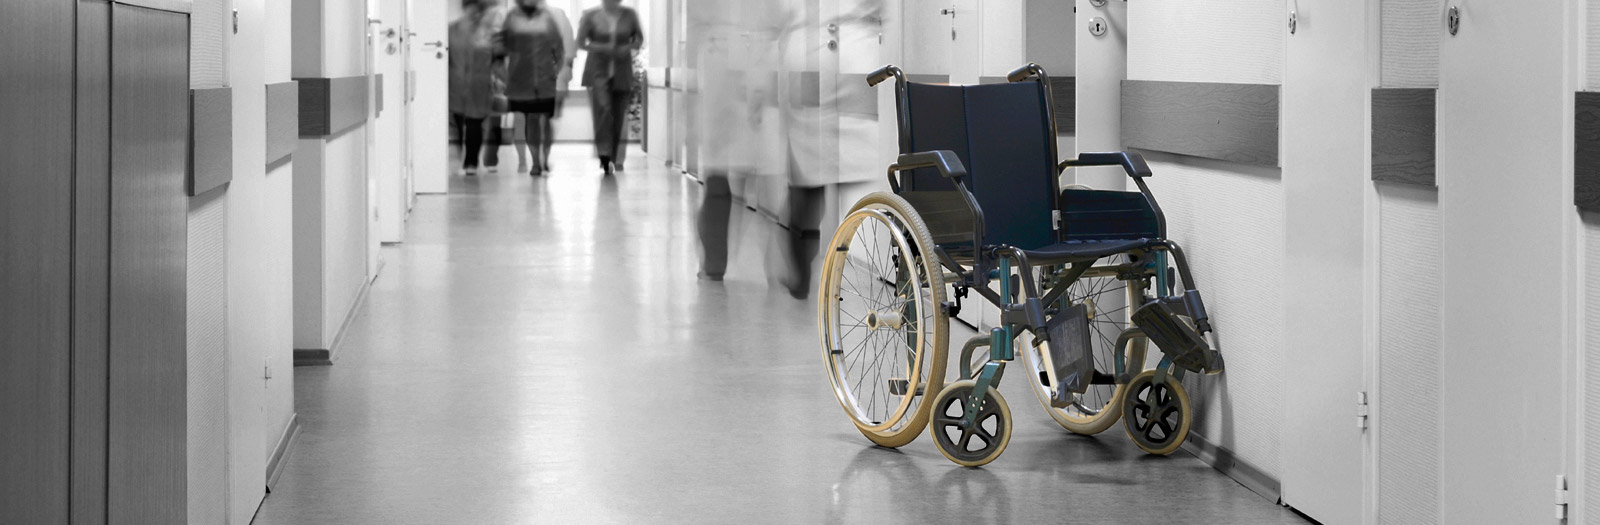 Nursing-Home-Abuse-and-Neglect-Lawyers